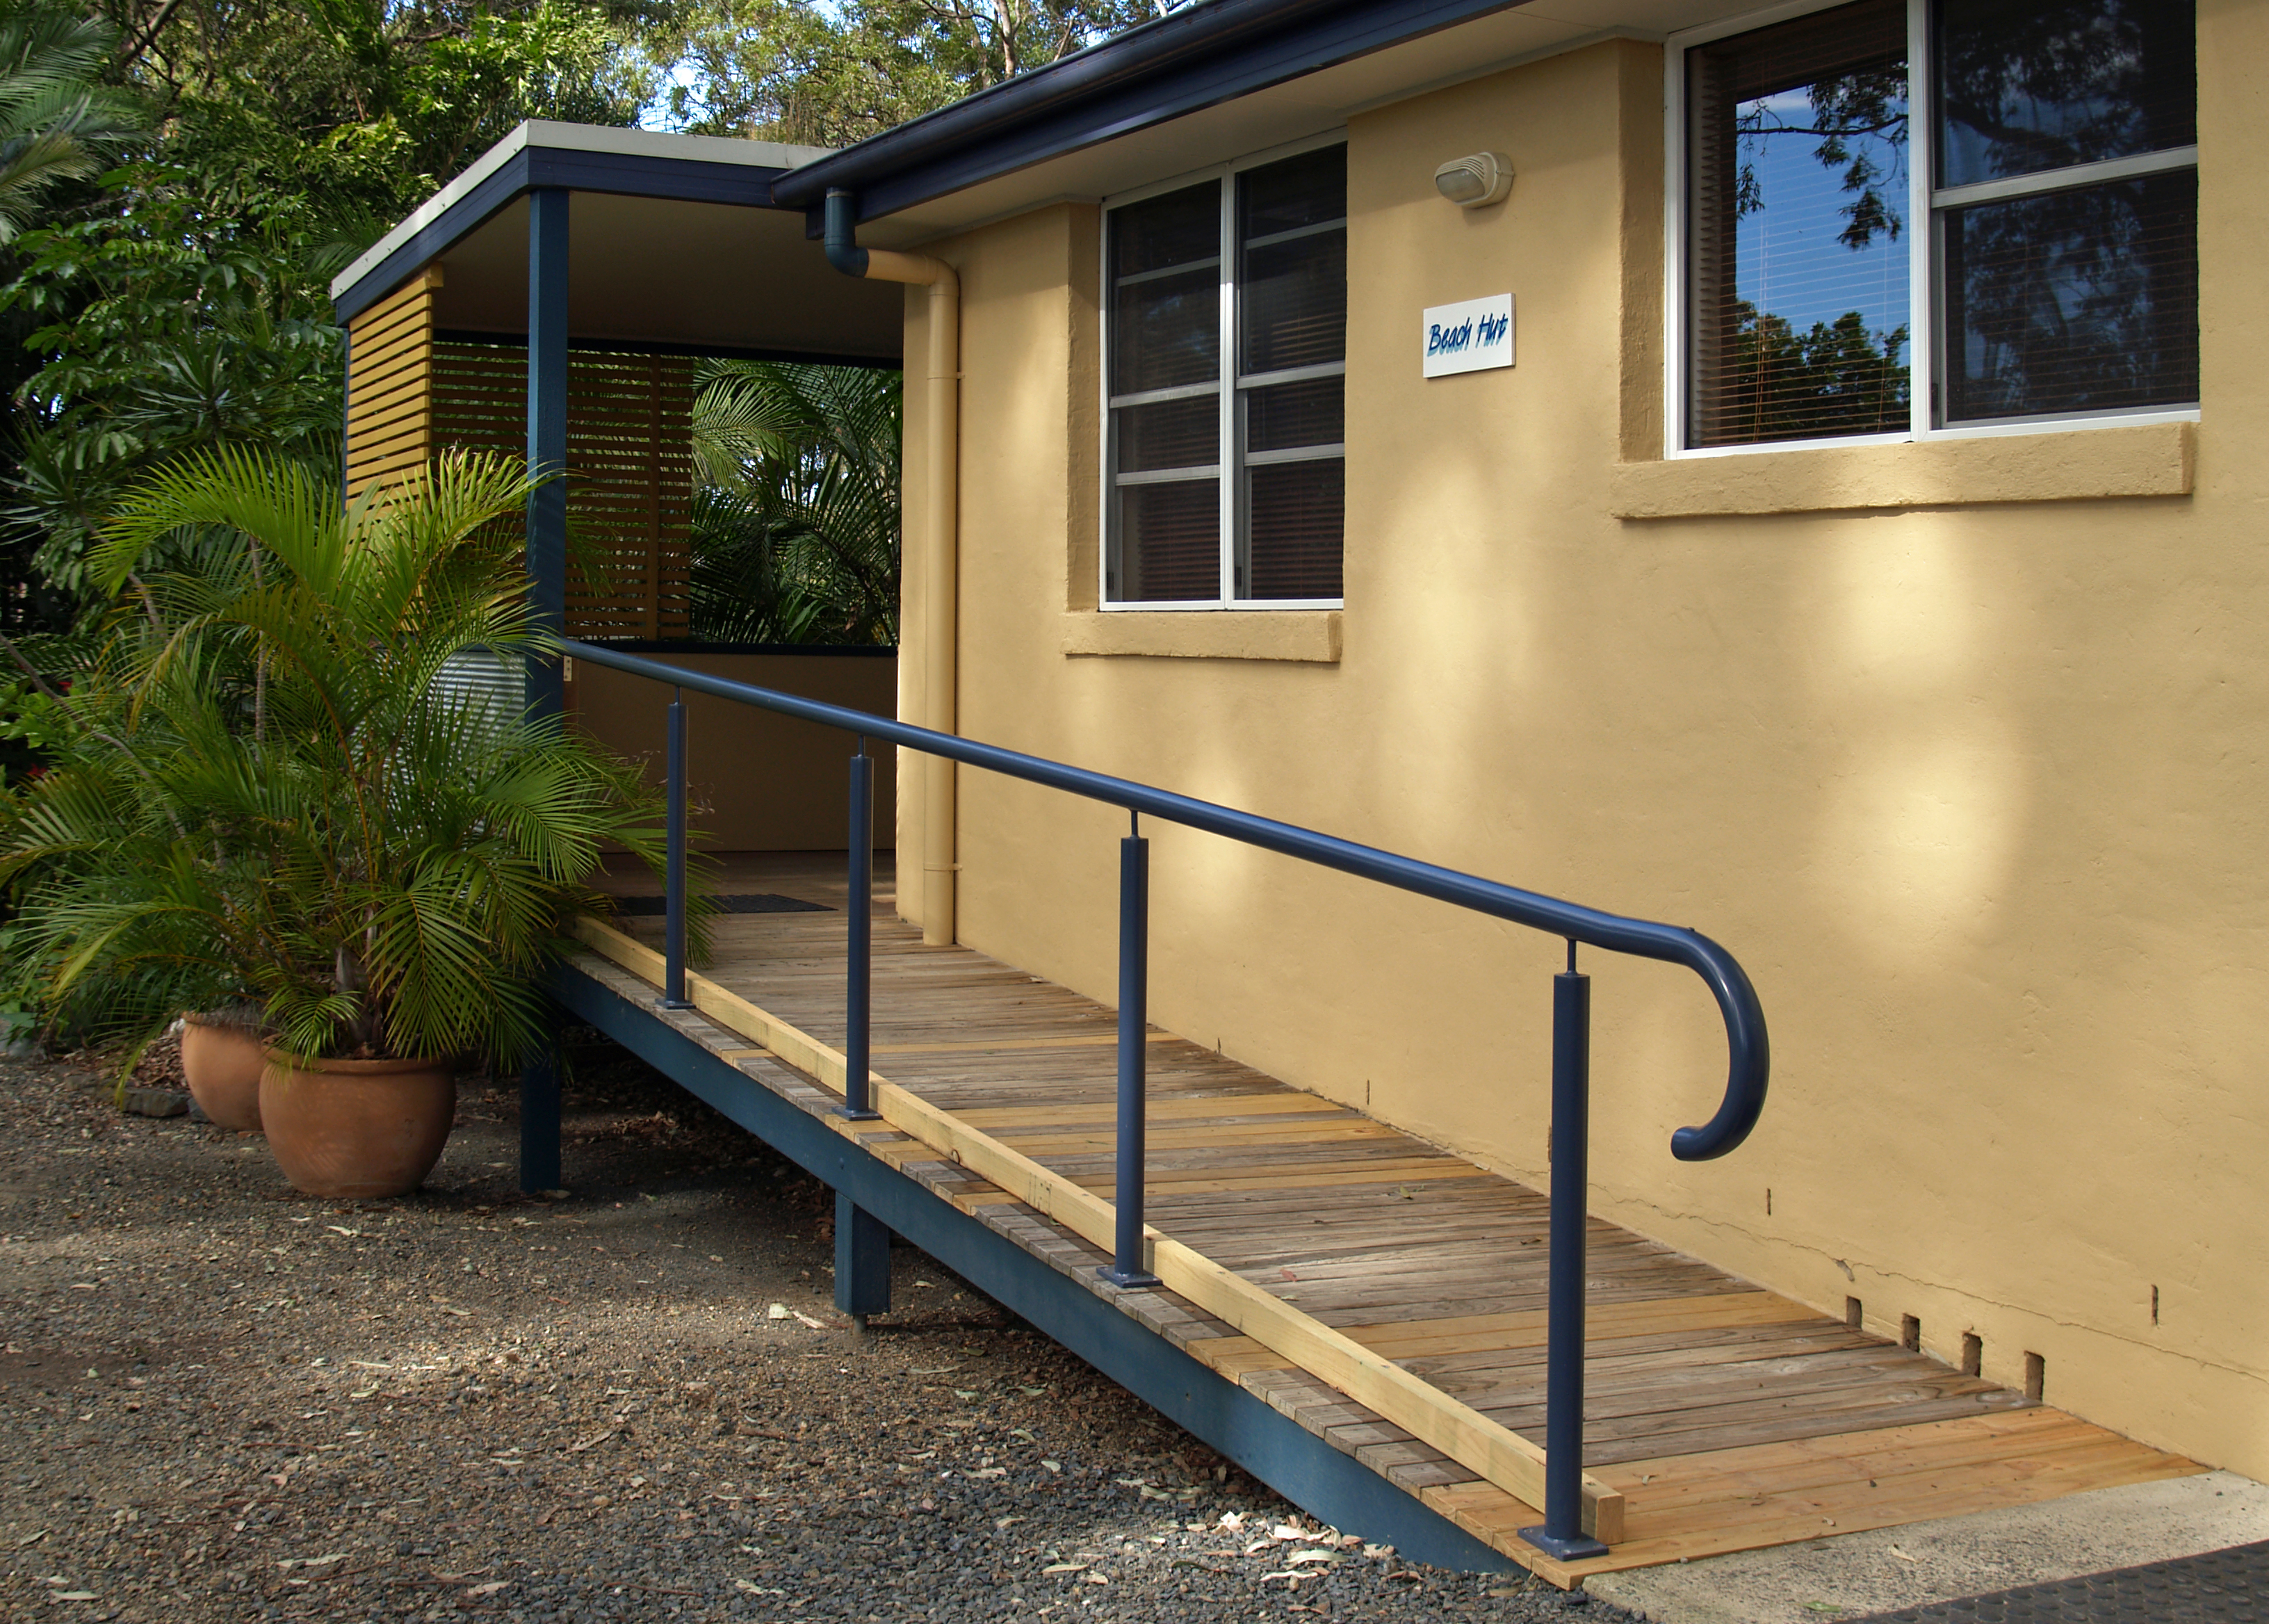 Pet friendly accommodation Woolgoolga & Coffs Harbour The Beach Hut Safety Beach Bungalows